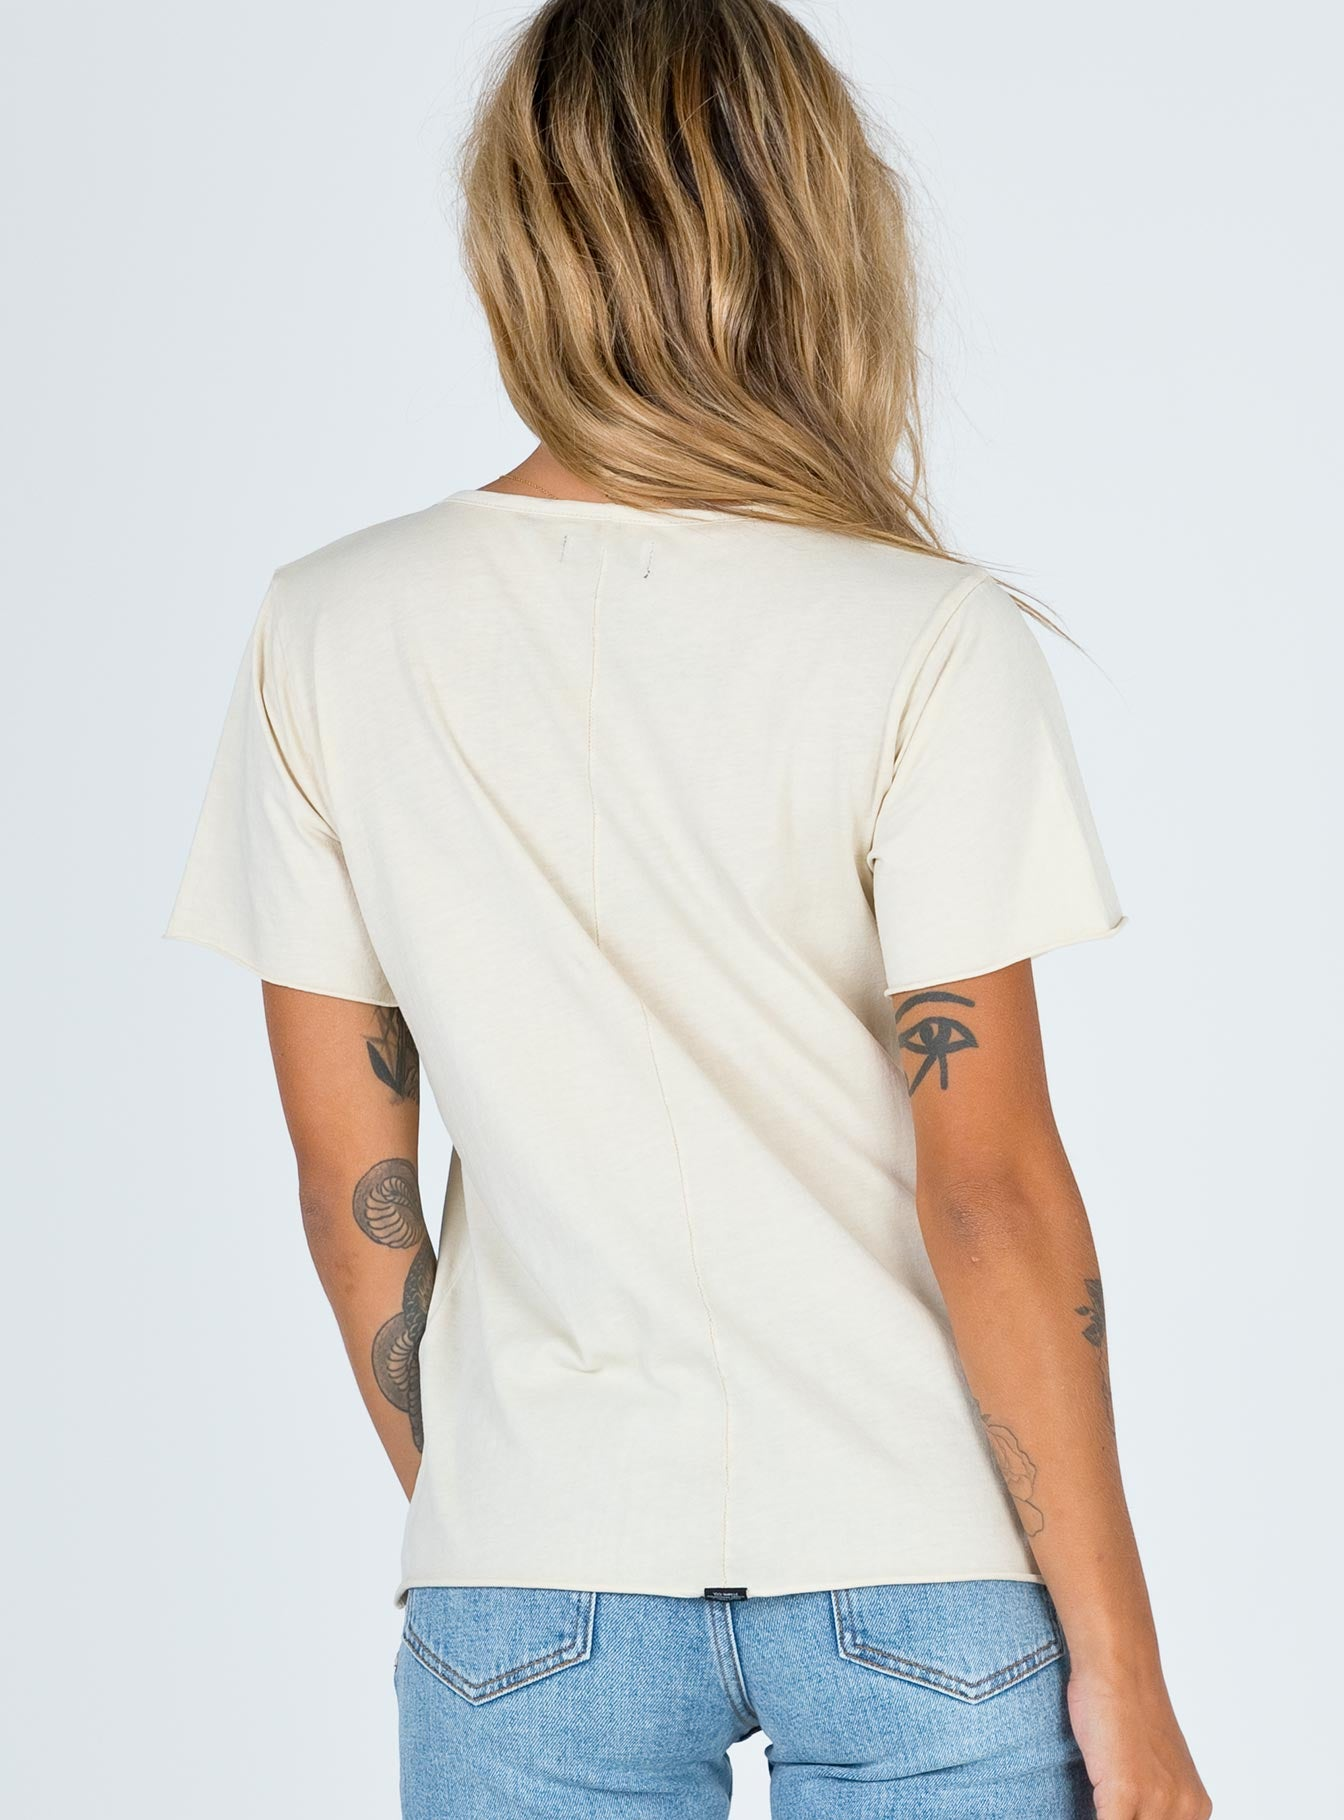 Thrills Minimal Thrills Loose Fit Tee